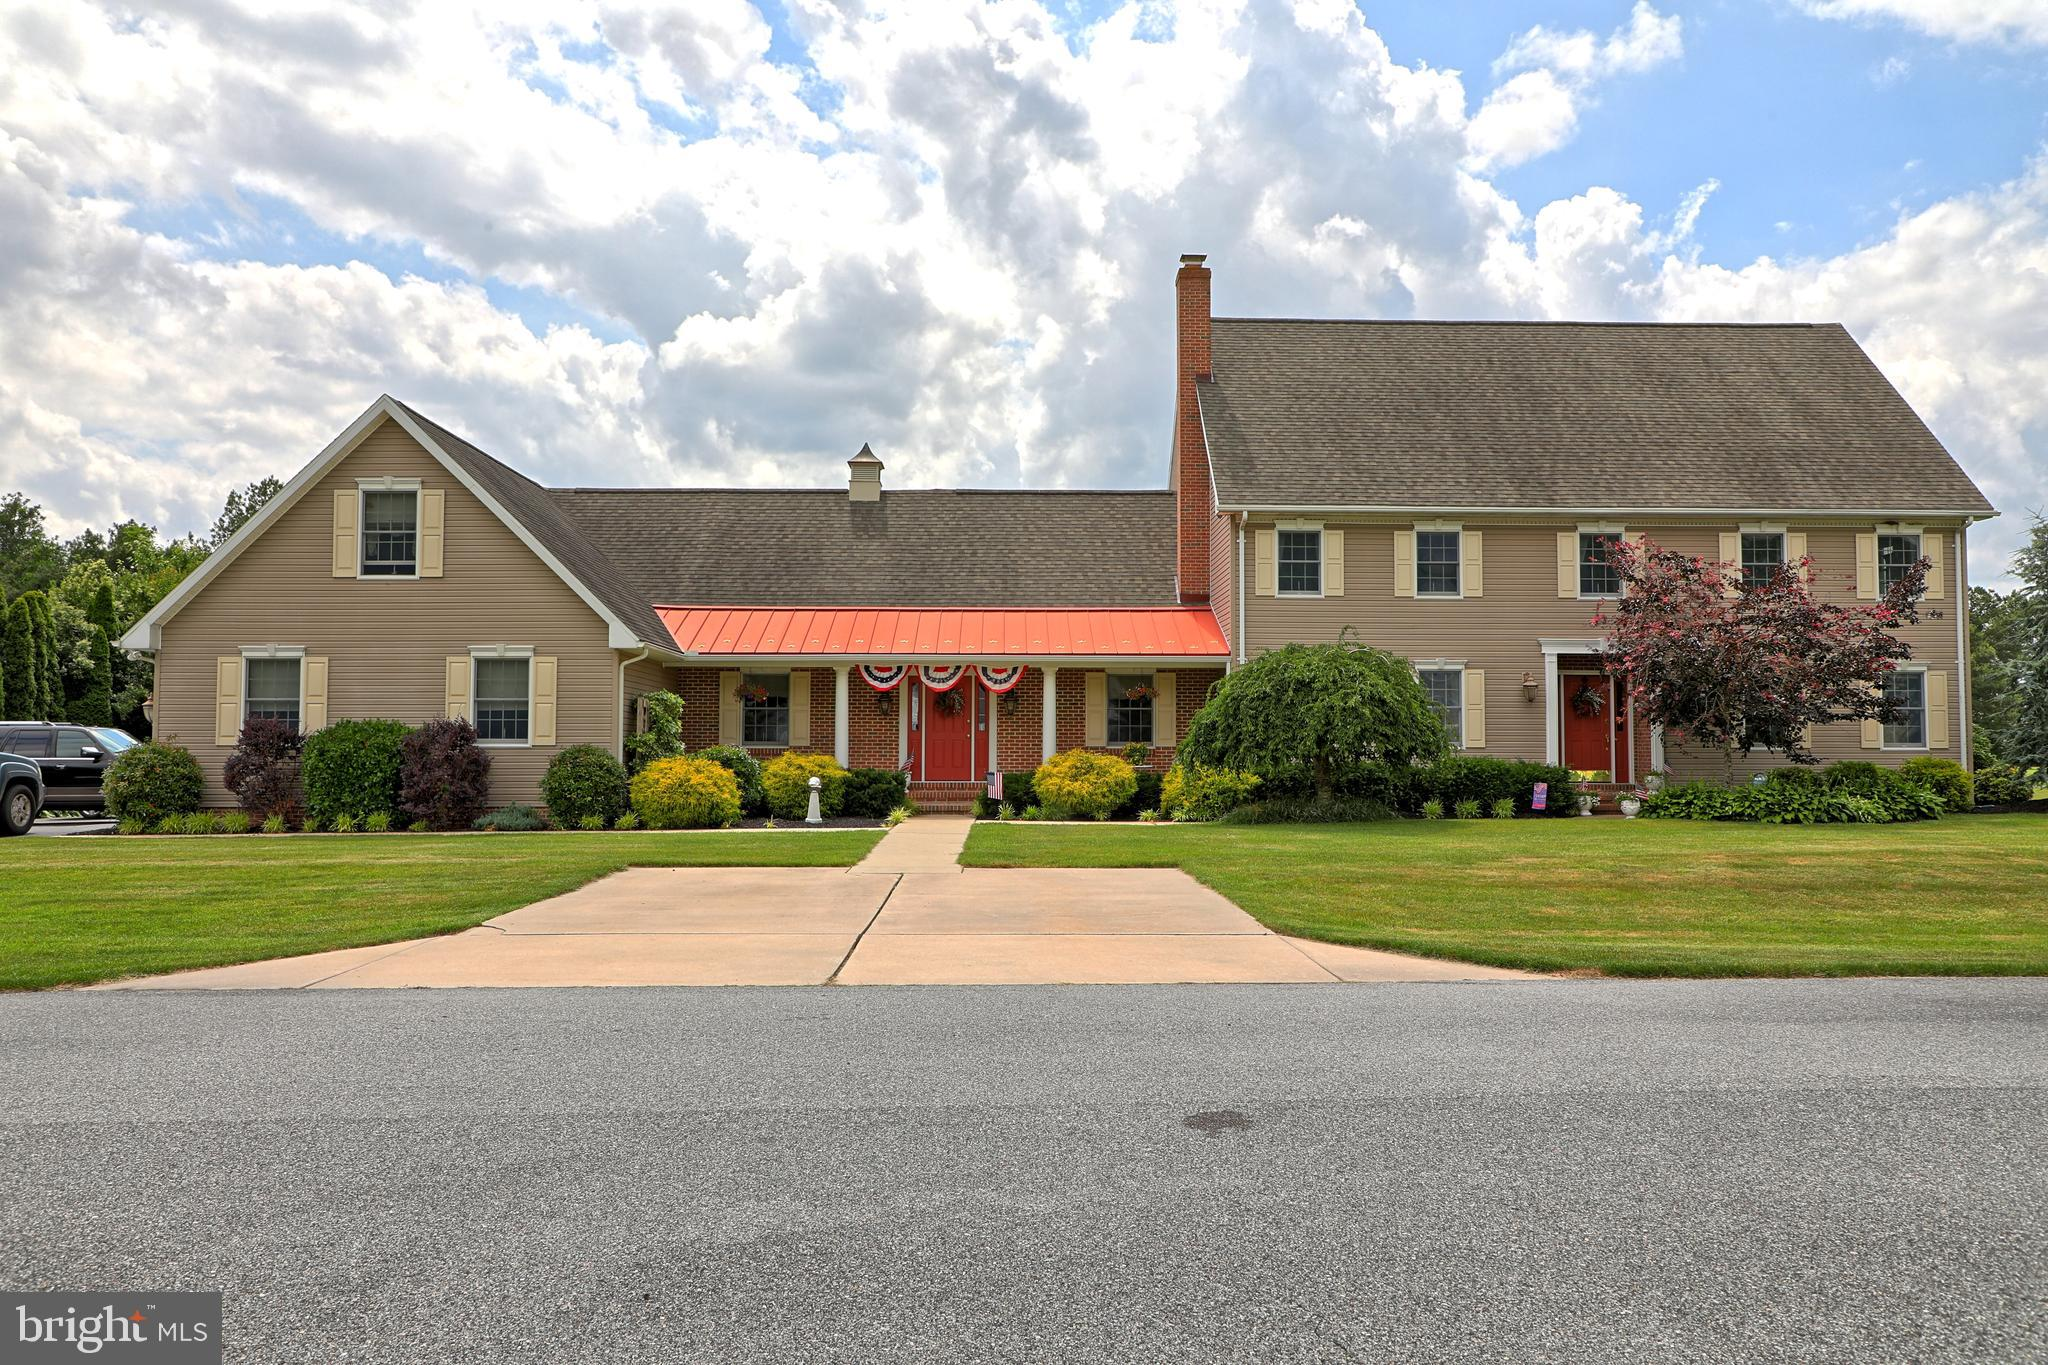 Nestled in the peaceful community of Country Club Village, this breathtaking 4 bedroom 3.5 bathroom colonial-style home is situated just off the 7th tee, on one of the largest lots in the cul-da-sac. Boasting over 5800 square feet of living space on a generous 0.63 acre lot, this home has been meticulously maintained with convenient upgrades for the modern homeowner and was elegantly designed with the concept of family being the top priority. Upon arrival, you're greeted by the lush landscaping and cozy front porch with brick accents, which will quickly become your favorite spot to sip coffee as you watch the sunrise. Ravishing hardwood flooring flows throughout the multiple living spaces and further accentuates the rustic charm of the home. Cozy up with your favorite book or your loved ones next to the floor to ceiling, brick fireplace in the family room or head to the kitchen and let your inner chef inspire you! The spacious, gourmet kitchen highlights ample cabinet and counter space, stainless steel appliances including a four-burner gas range, large pantry and a generous center island. Unwind after long days in the spacious, second level owner's suite with a gorgeous California closet with ample storage space as well as a luxurious en suite bathroom equipped with a dual vanity with granite countertops, a standing shower and a relaxing soaking tub. The home also features a gorgeous, attached in-law suite with a separate entrance, living space, kitchenette and bedroom, ideal for guests staying over night. Offering two more additional bedrooms, a large bonus room that can be converted to fit your families needs, as well as another full bathroom, this home has plenty of space for all your loved ones! Spend your days soaking up the sunshine on the back deck surrounded by beautiful flowers, herbs and raised garden beds or head to the paver patio and relax in your lawn chair with your favorite beverage in hand. Once the sun goes down, hop in the hot tub and watch the f